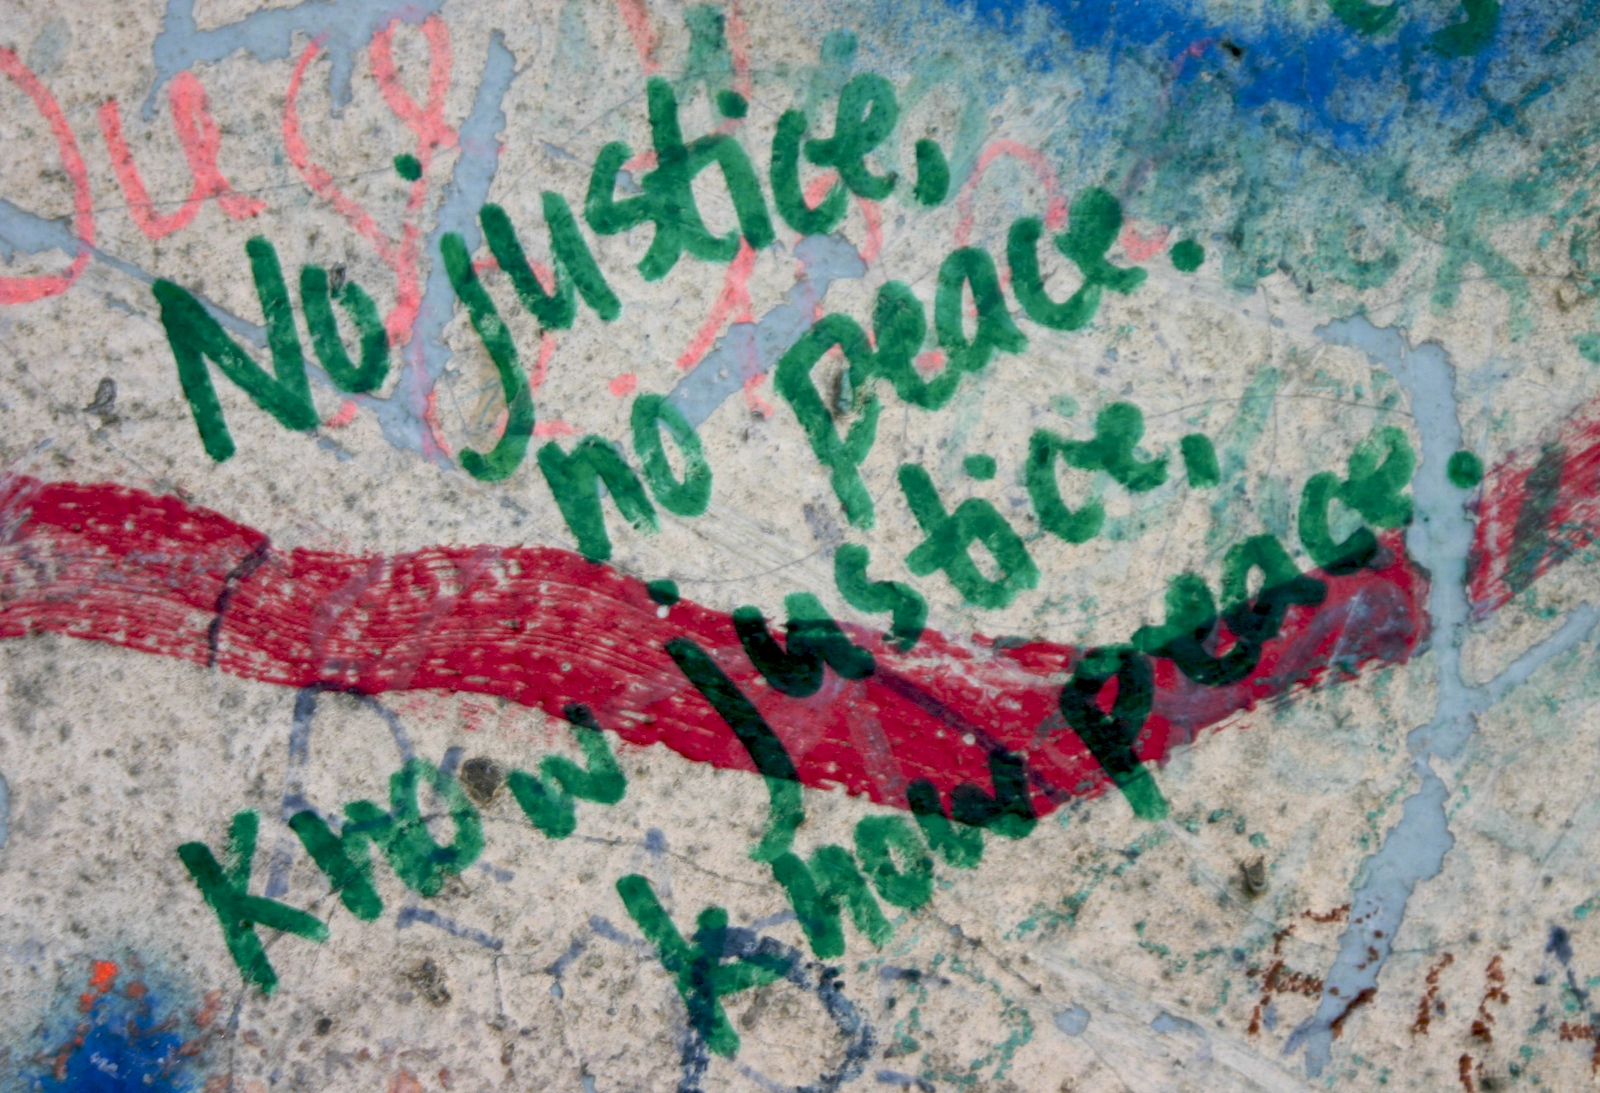 Legal aid: no justice, no peace #ukuncut #oct5